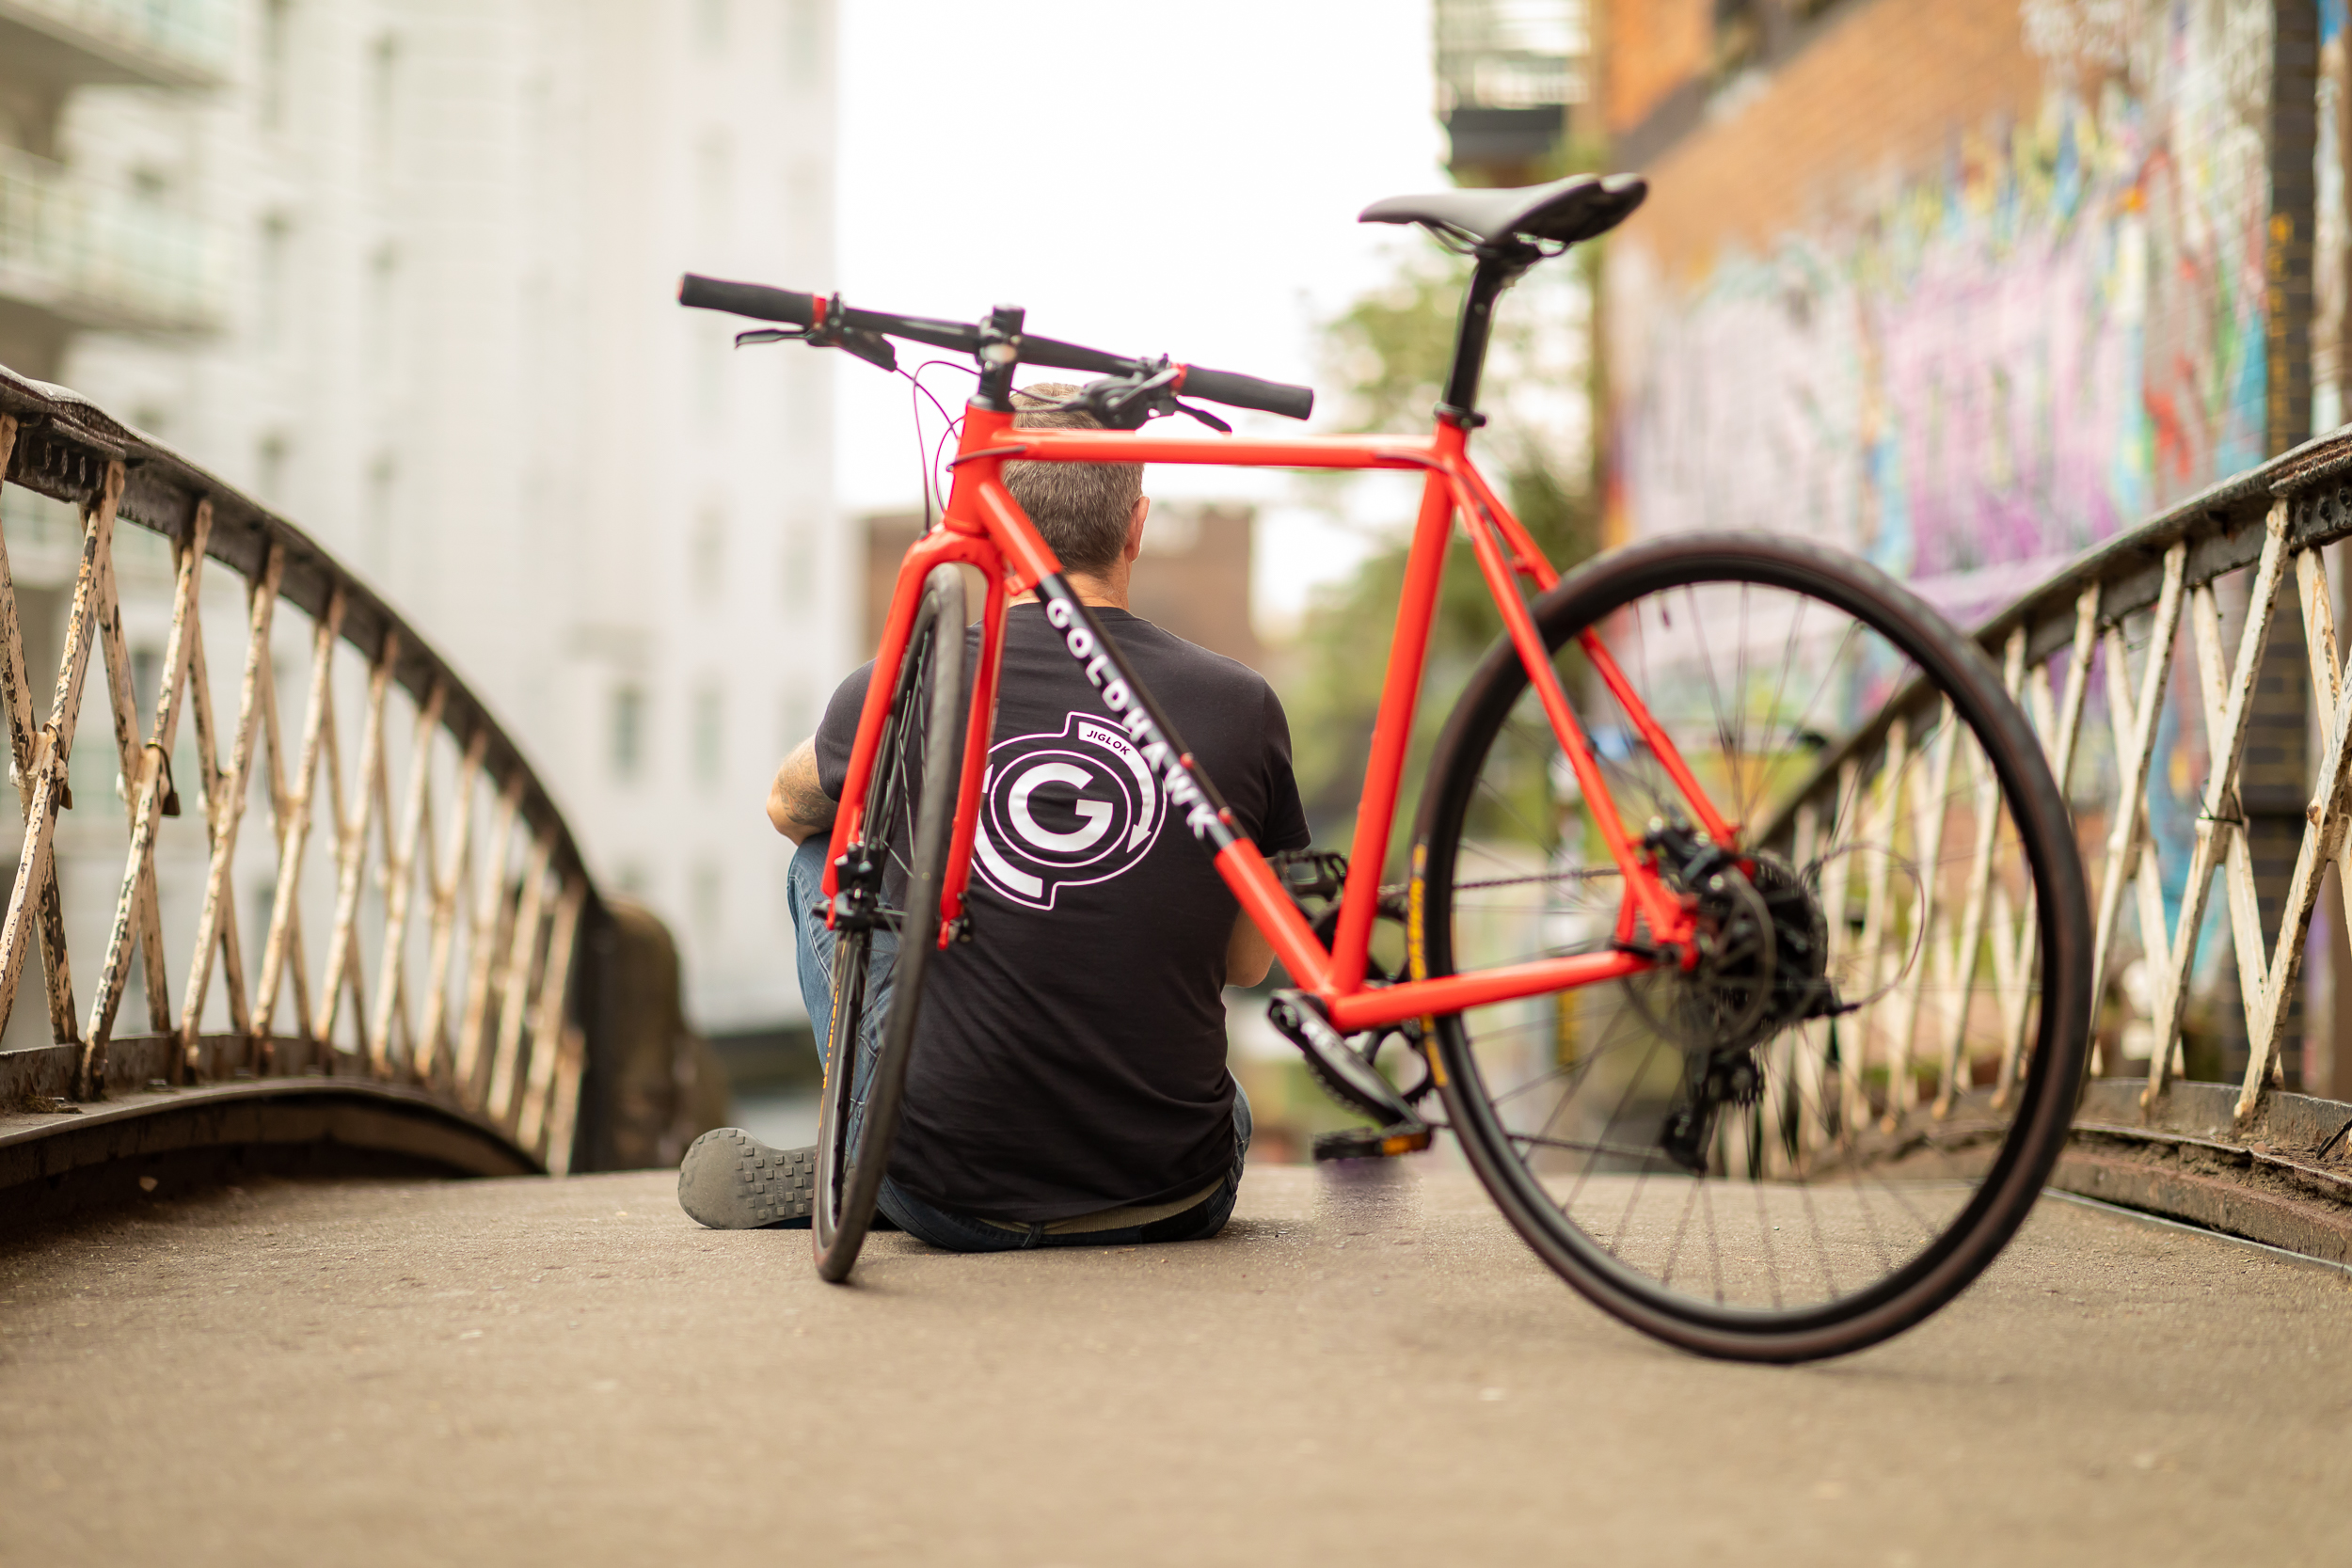 Featuring a hand made steel frame. The ideal urban bike, commuter bike or gravel bike